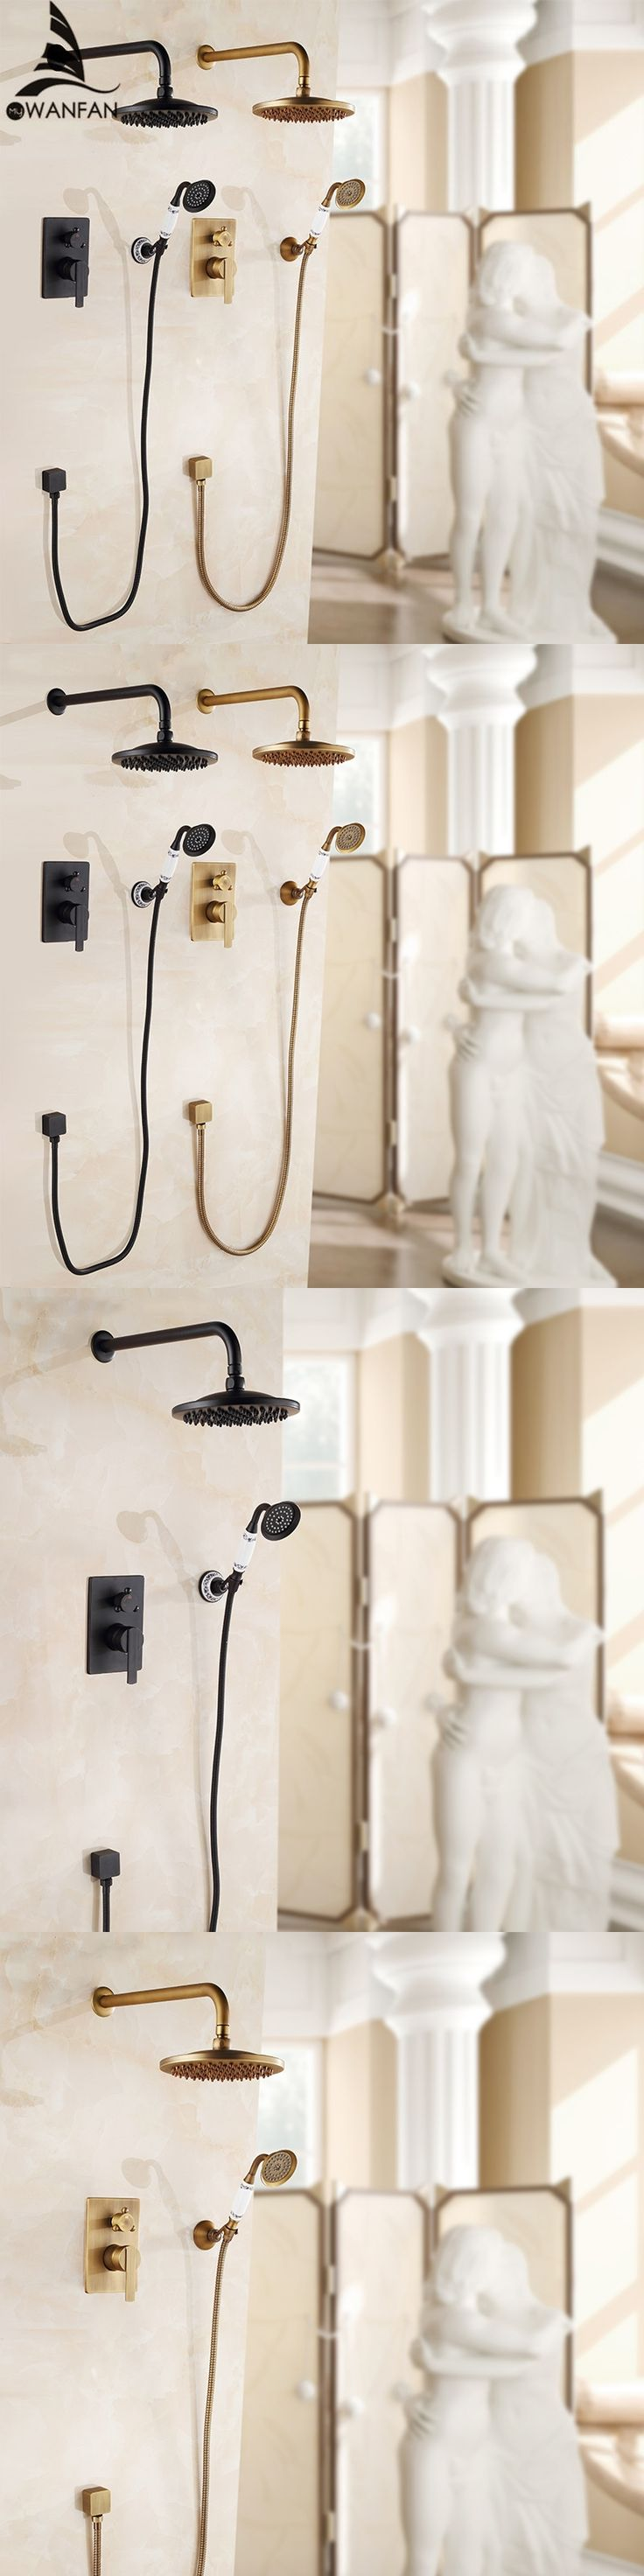 Luxury Bathroom Wall Concealed Antique Shower Faucet Mixer Black Bathroom Shower Kit Bath Mixer Set Shower Two Function FS-13889